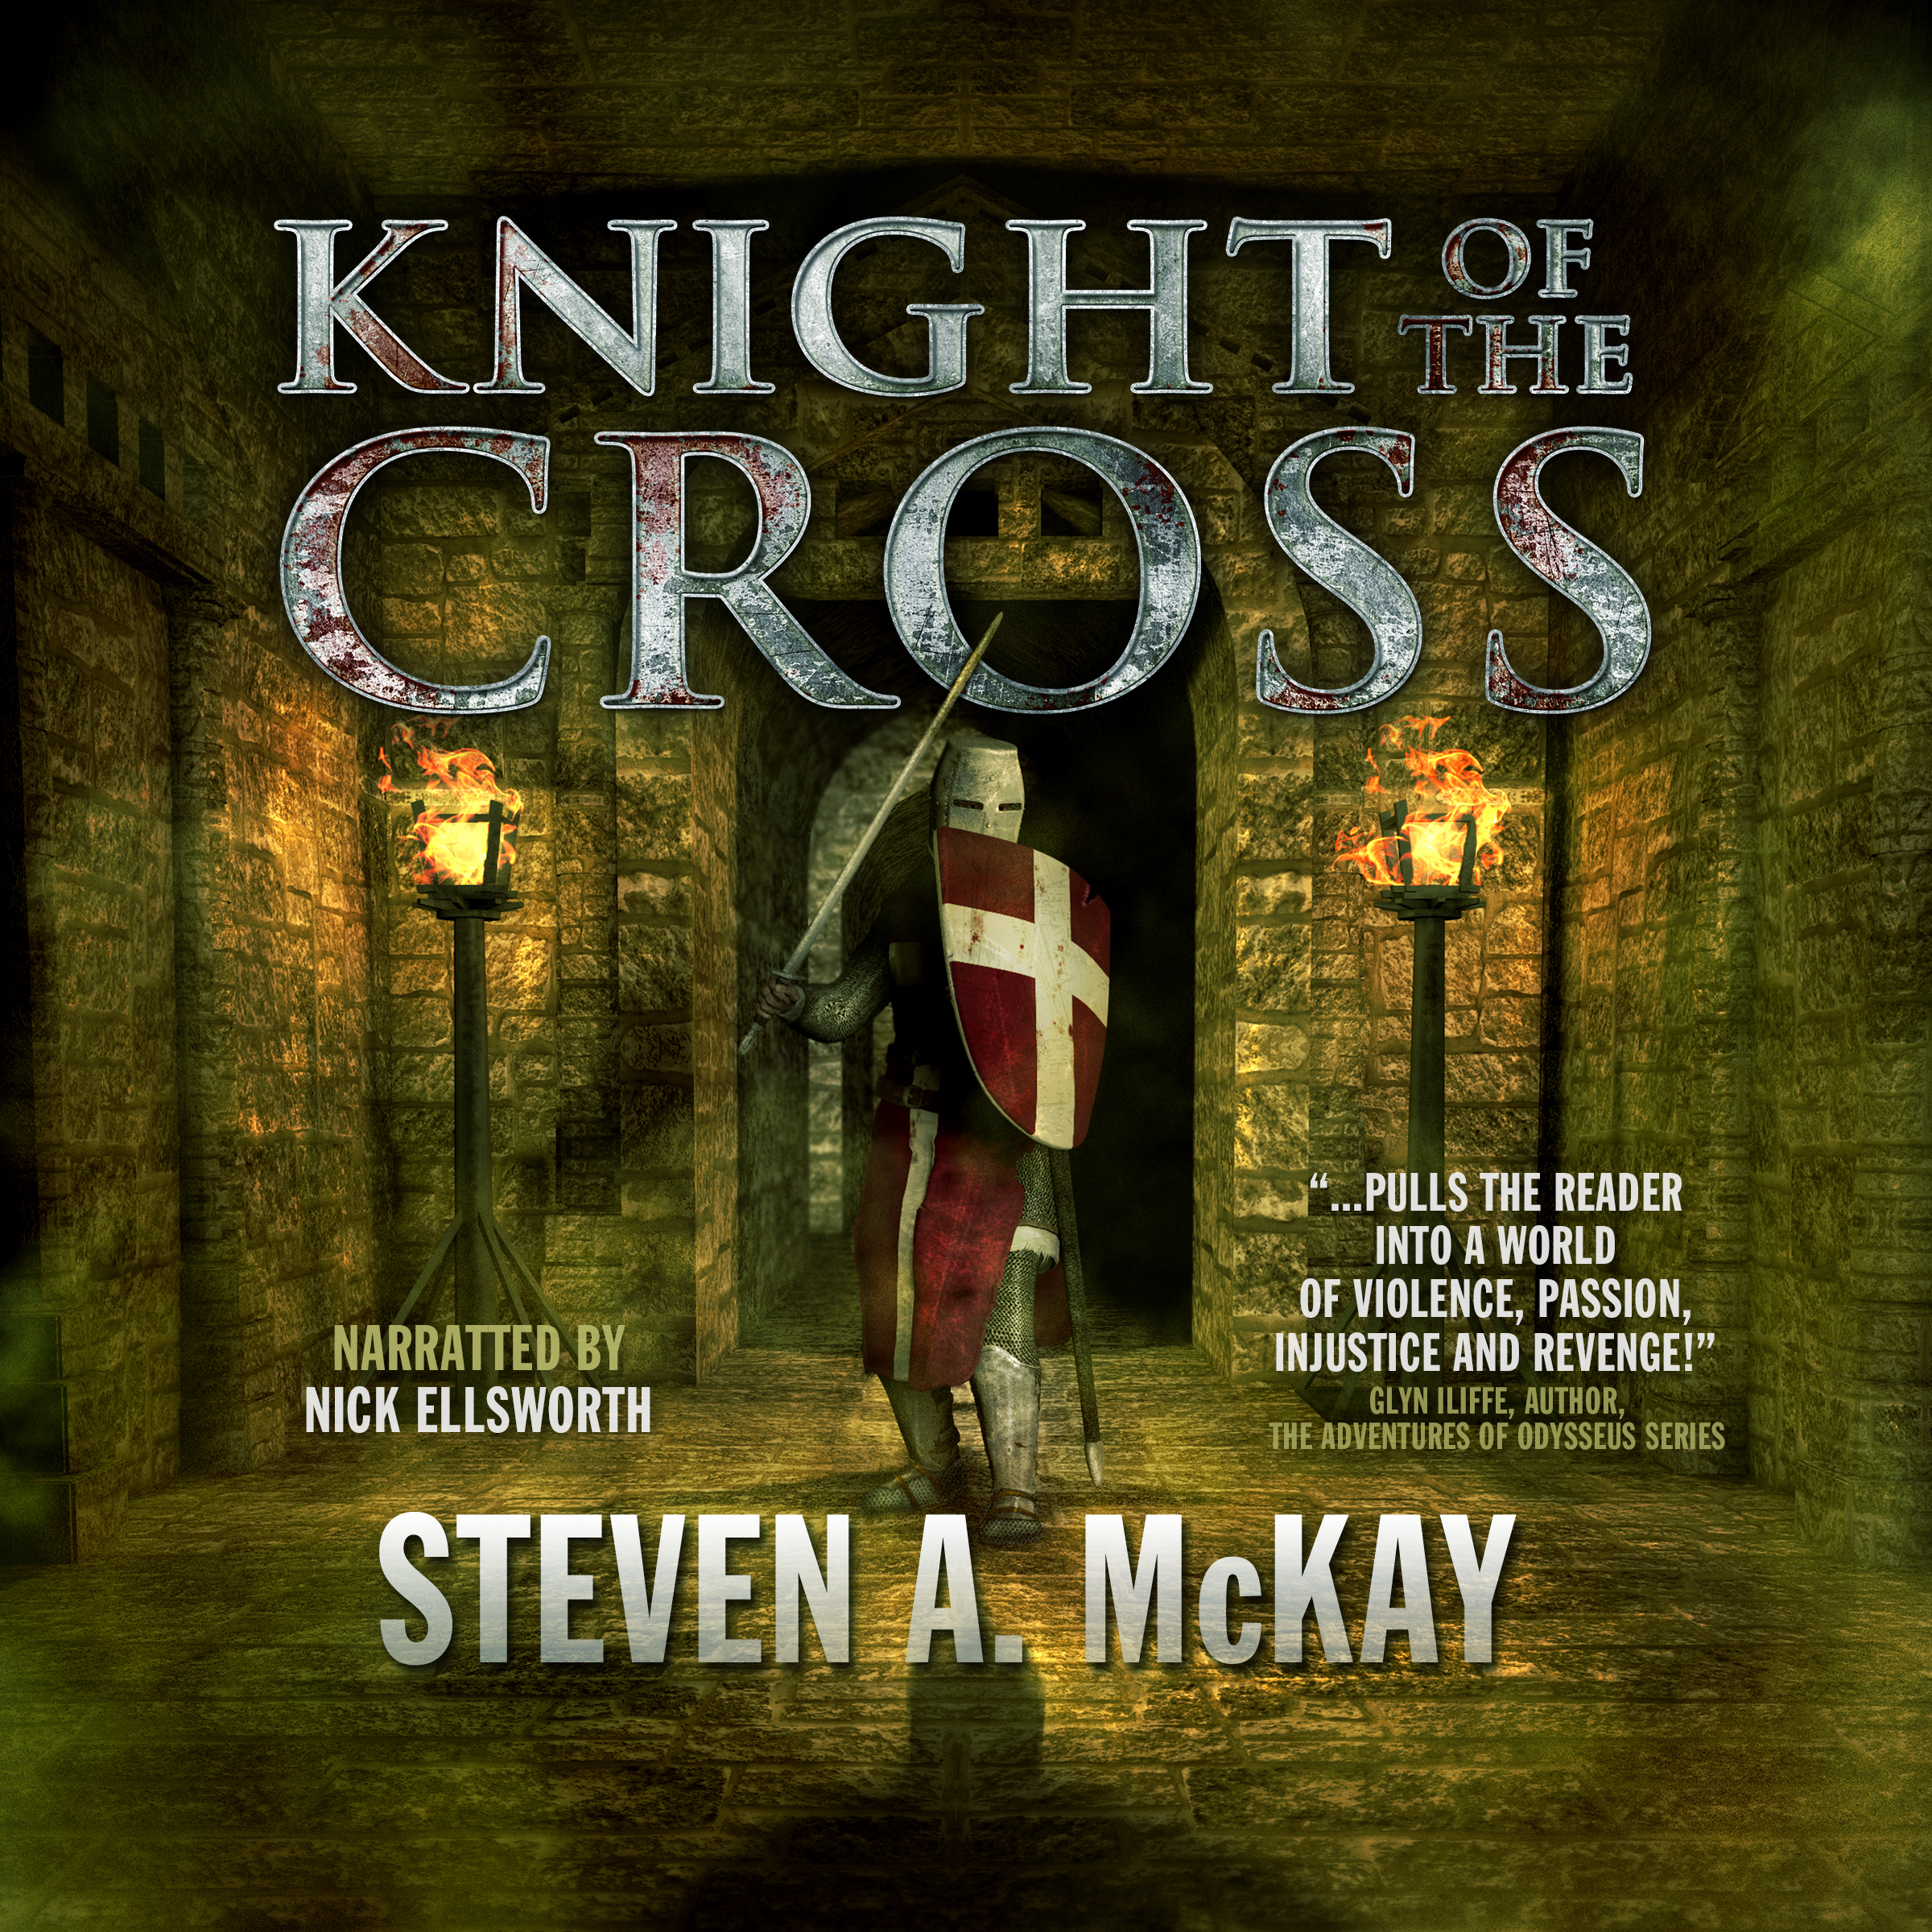 Knight of the Cross audiobook now available – cheap too